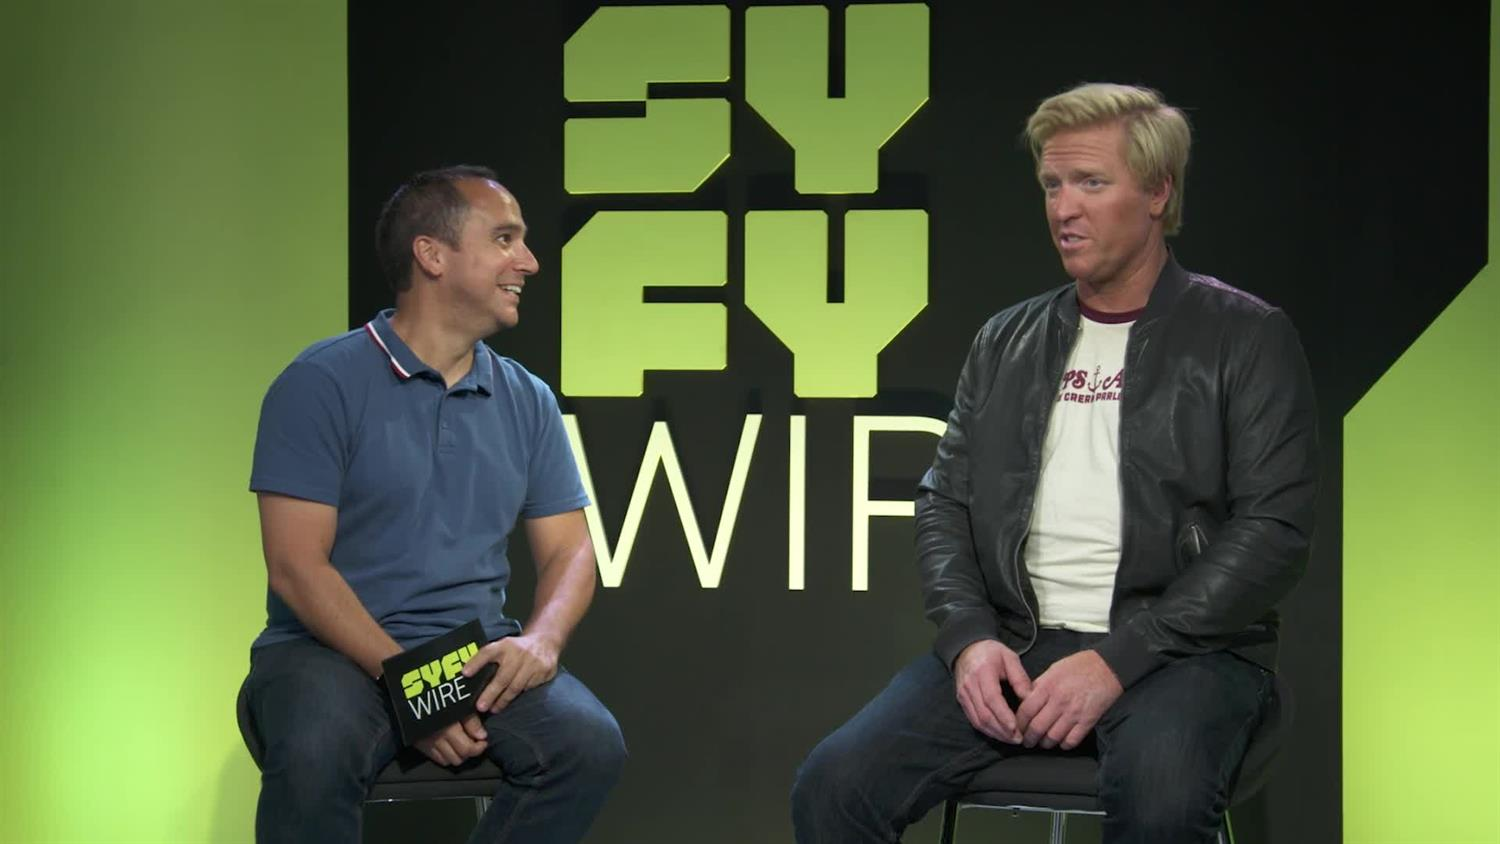 Jake Busey on The Predator & Marvel's Agents of S.H.I.E.L.D.Roles | SYFY WIRE